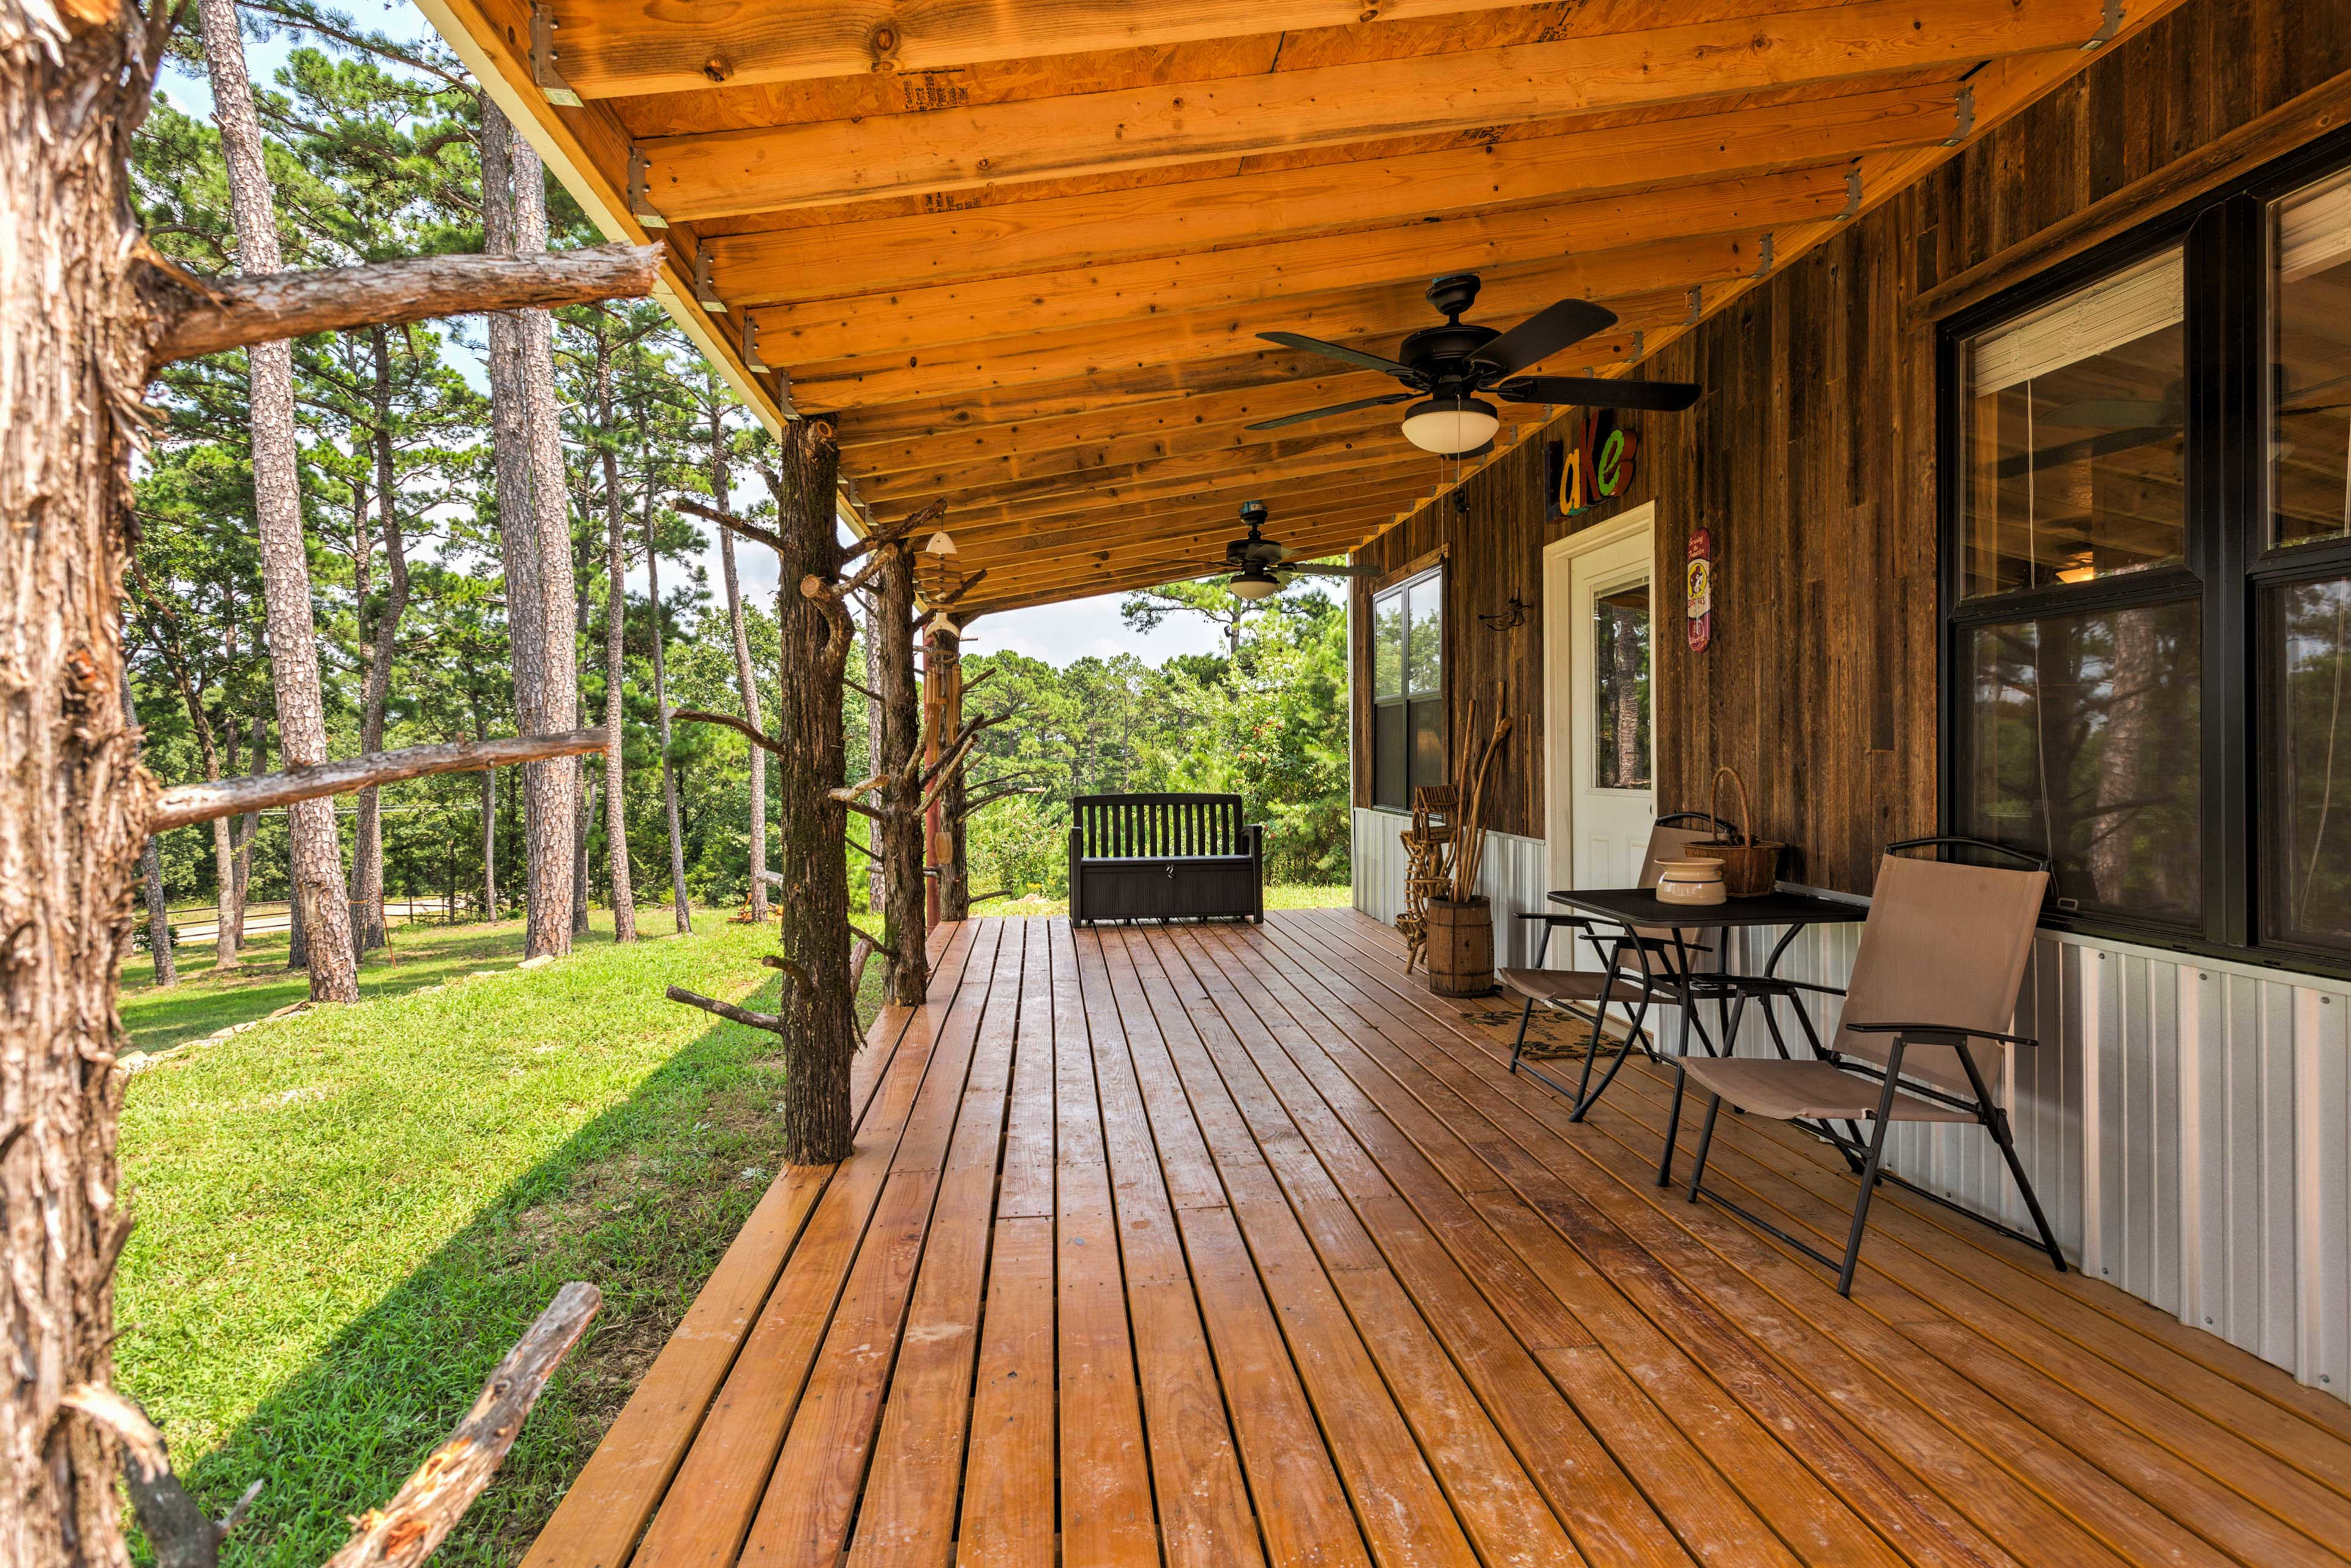 Look forward to sipping your morning coffee on the front porch while admiring the peaceful nature views.